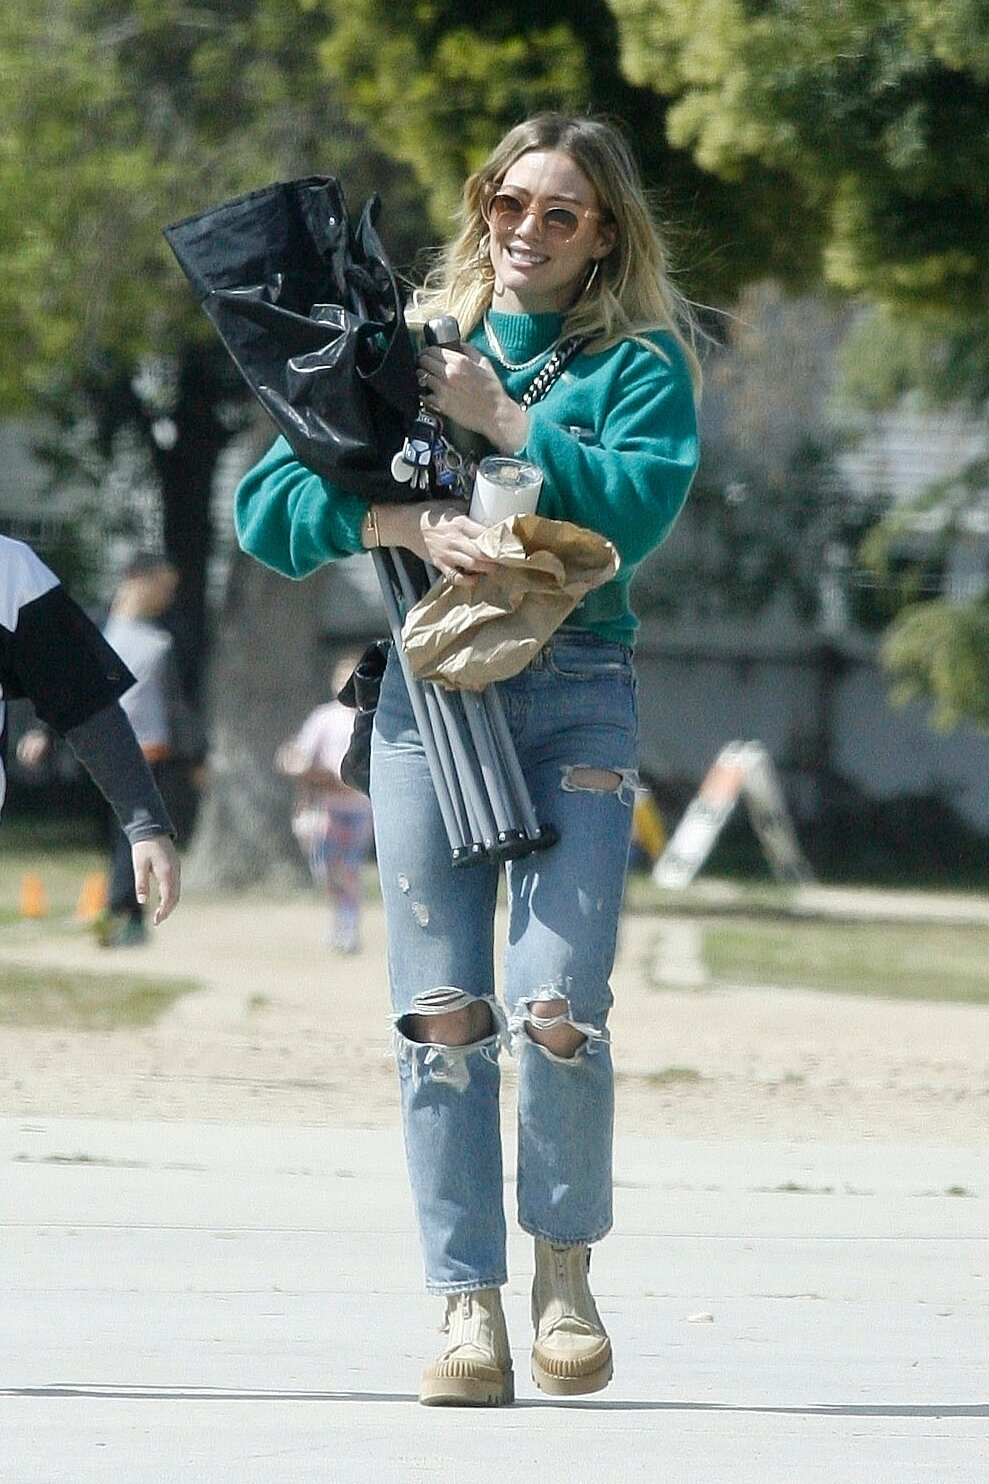 hilary-duff-levis-ripped-jeans.jpg